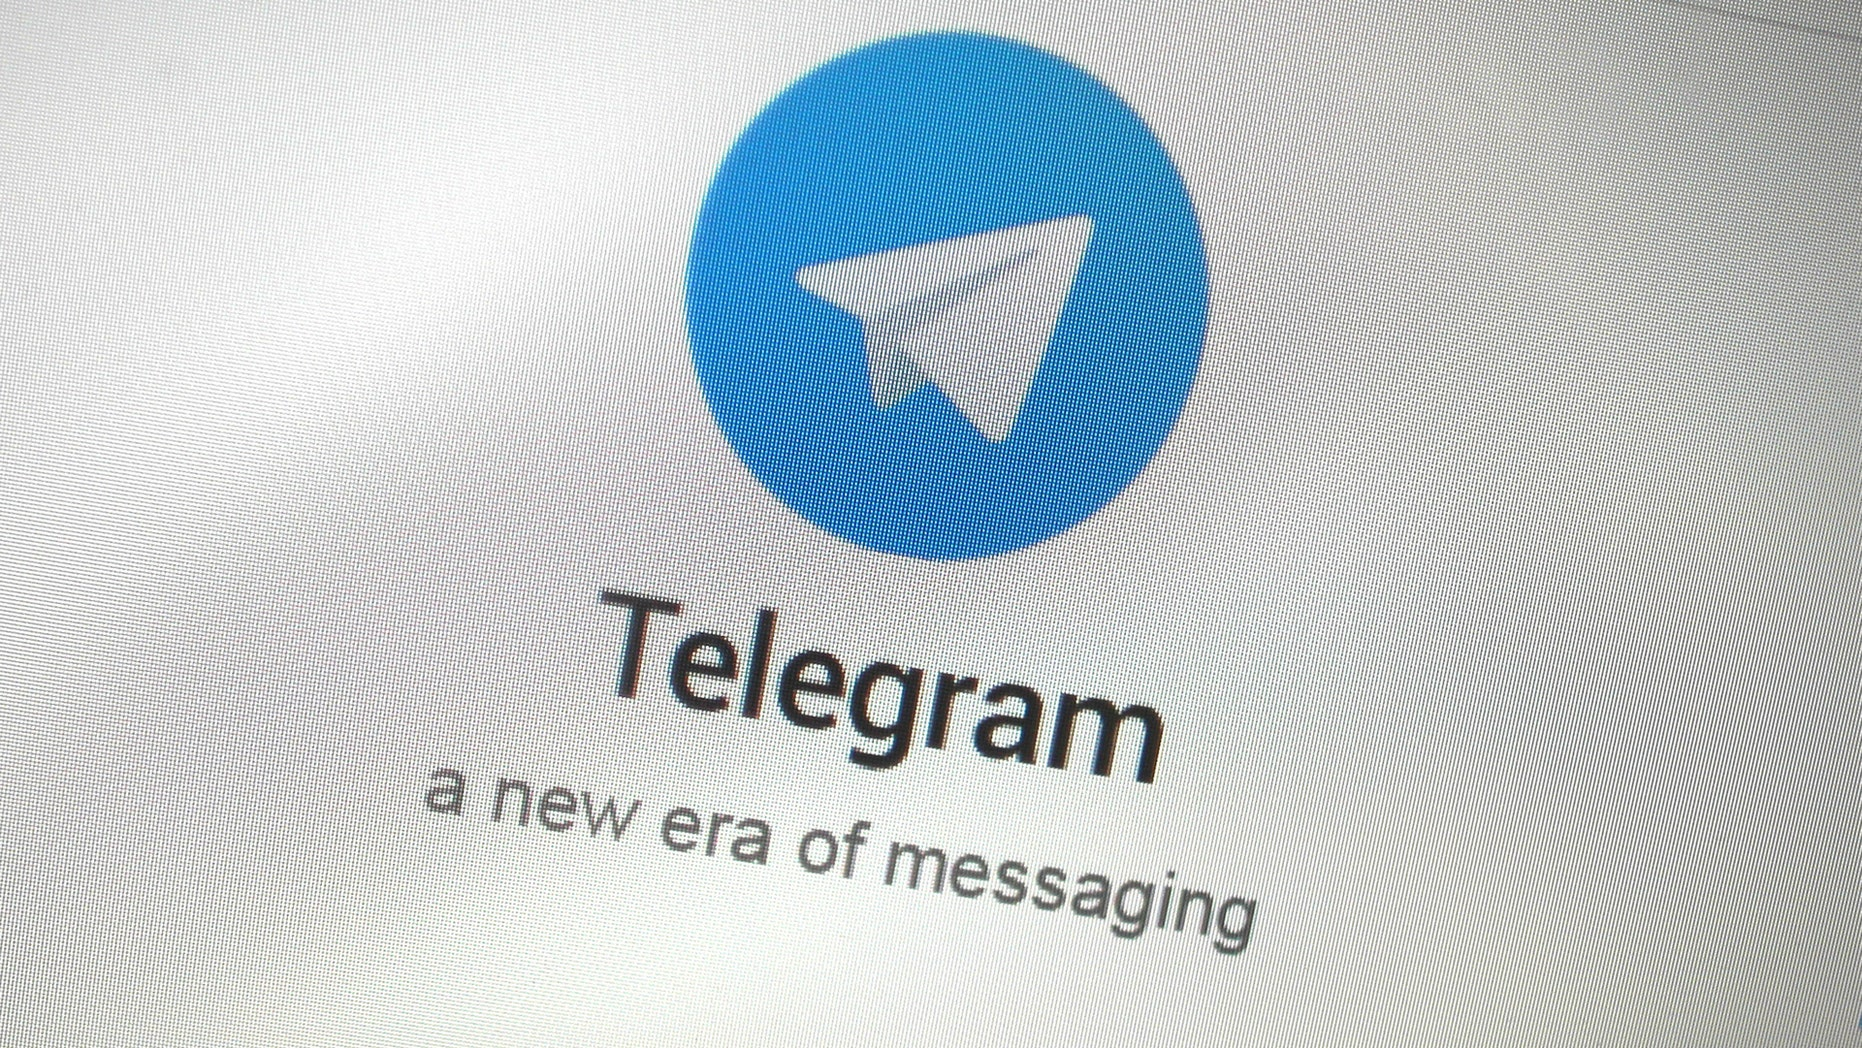 File photo: The Telegram messaging app logo is seen on a website in Singapore November 19, 2015. The mobile messaging service Telegram, created by the exiled founder of Russia's most popular social network site, has emerged as an important new promotional and recruitment platform for Islamic State. (REUTERS/Thomas White)